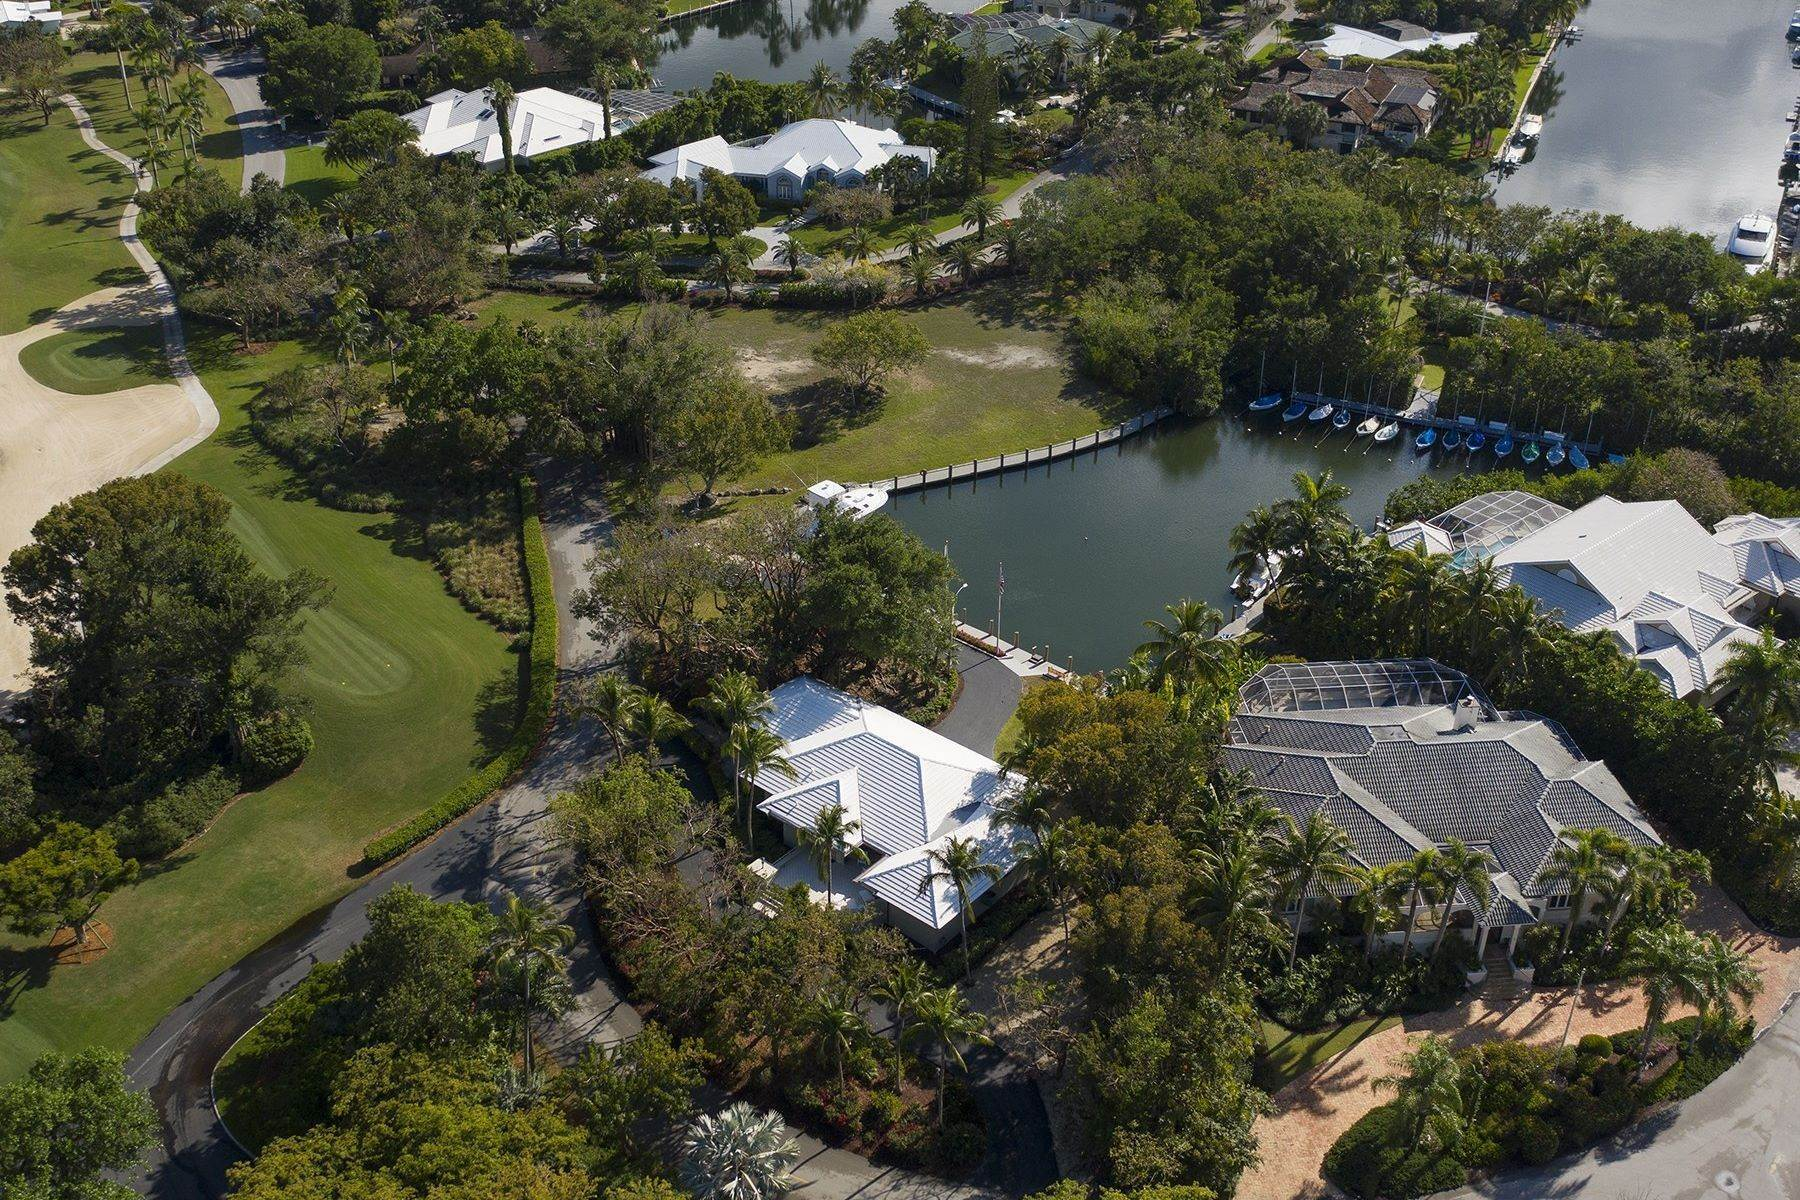 46. Property for Sale at 10 Cannon Point, Key Largo, FL 10 Cannon Point Key Largo, Florida 33037 United States